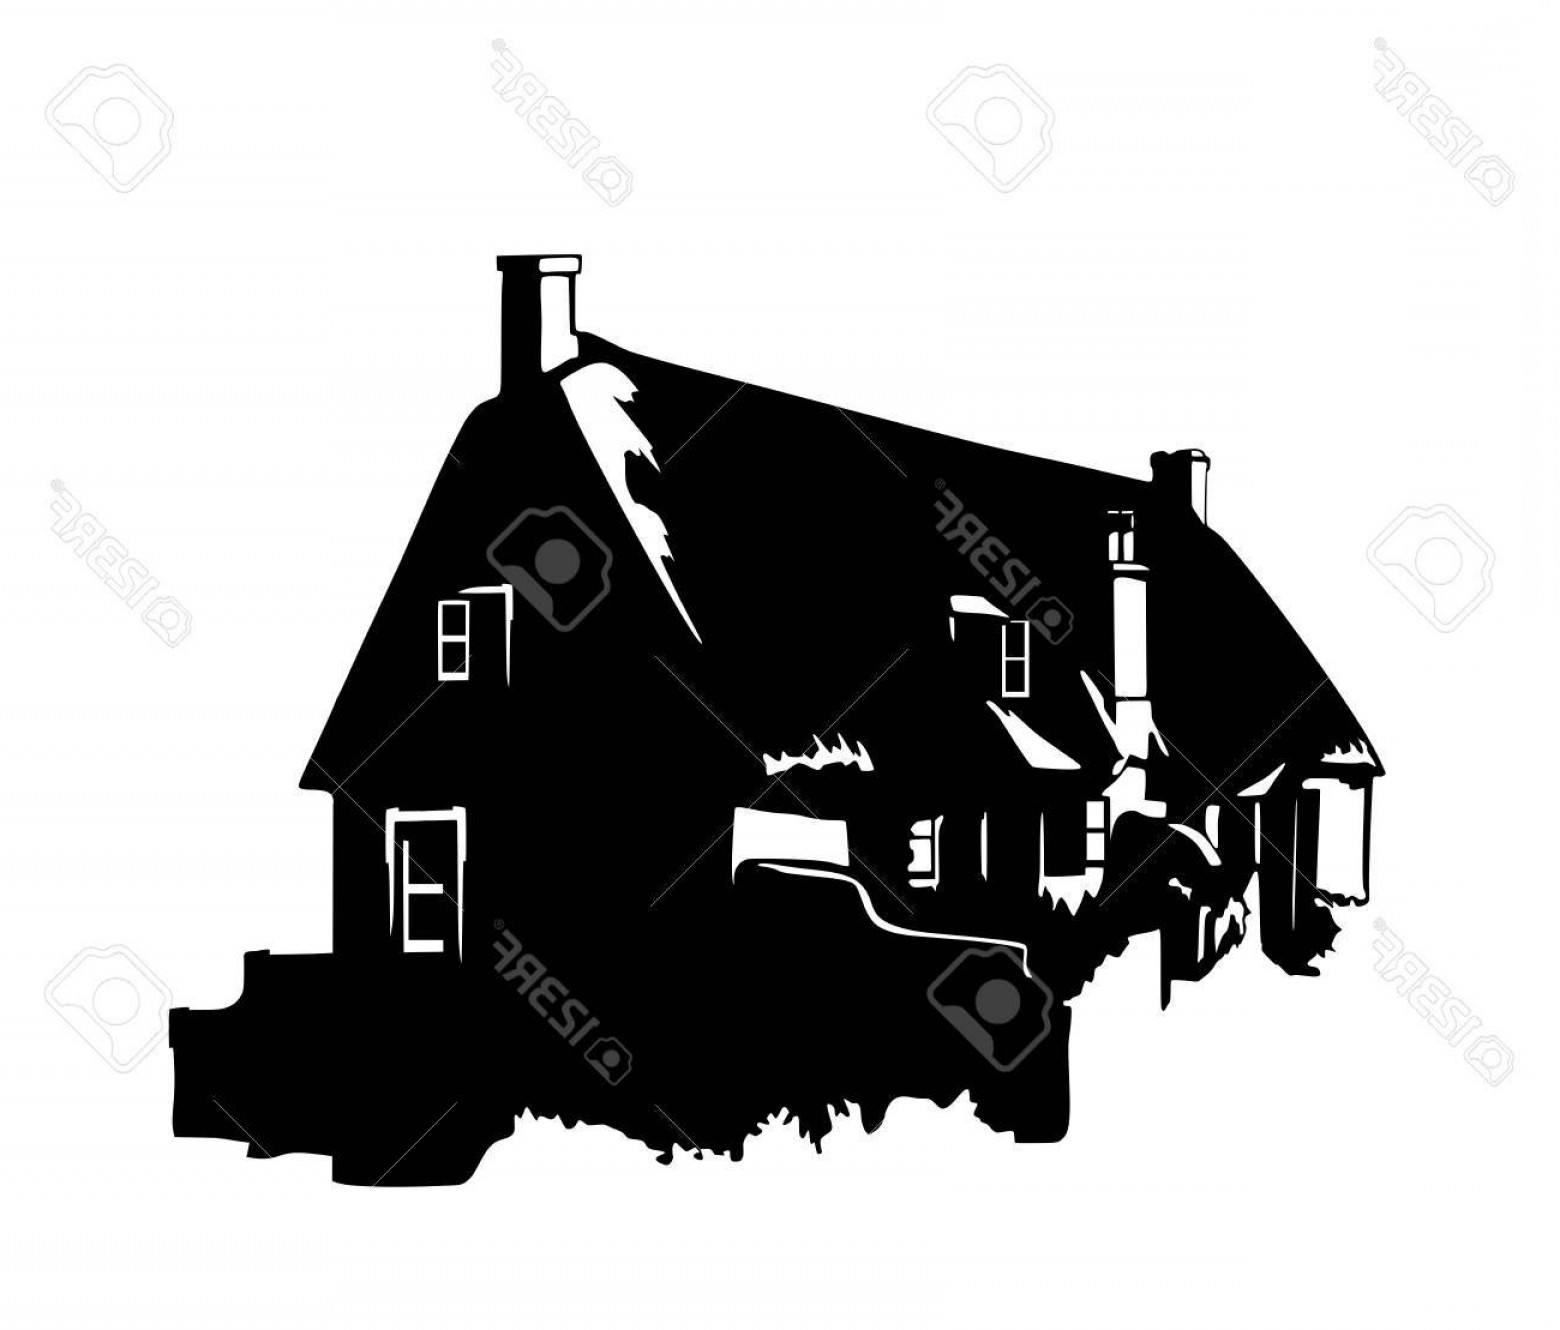 1560x1330 Photostock Vector Vector Silhouette Of A Vintage English Rural